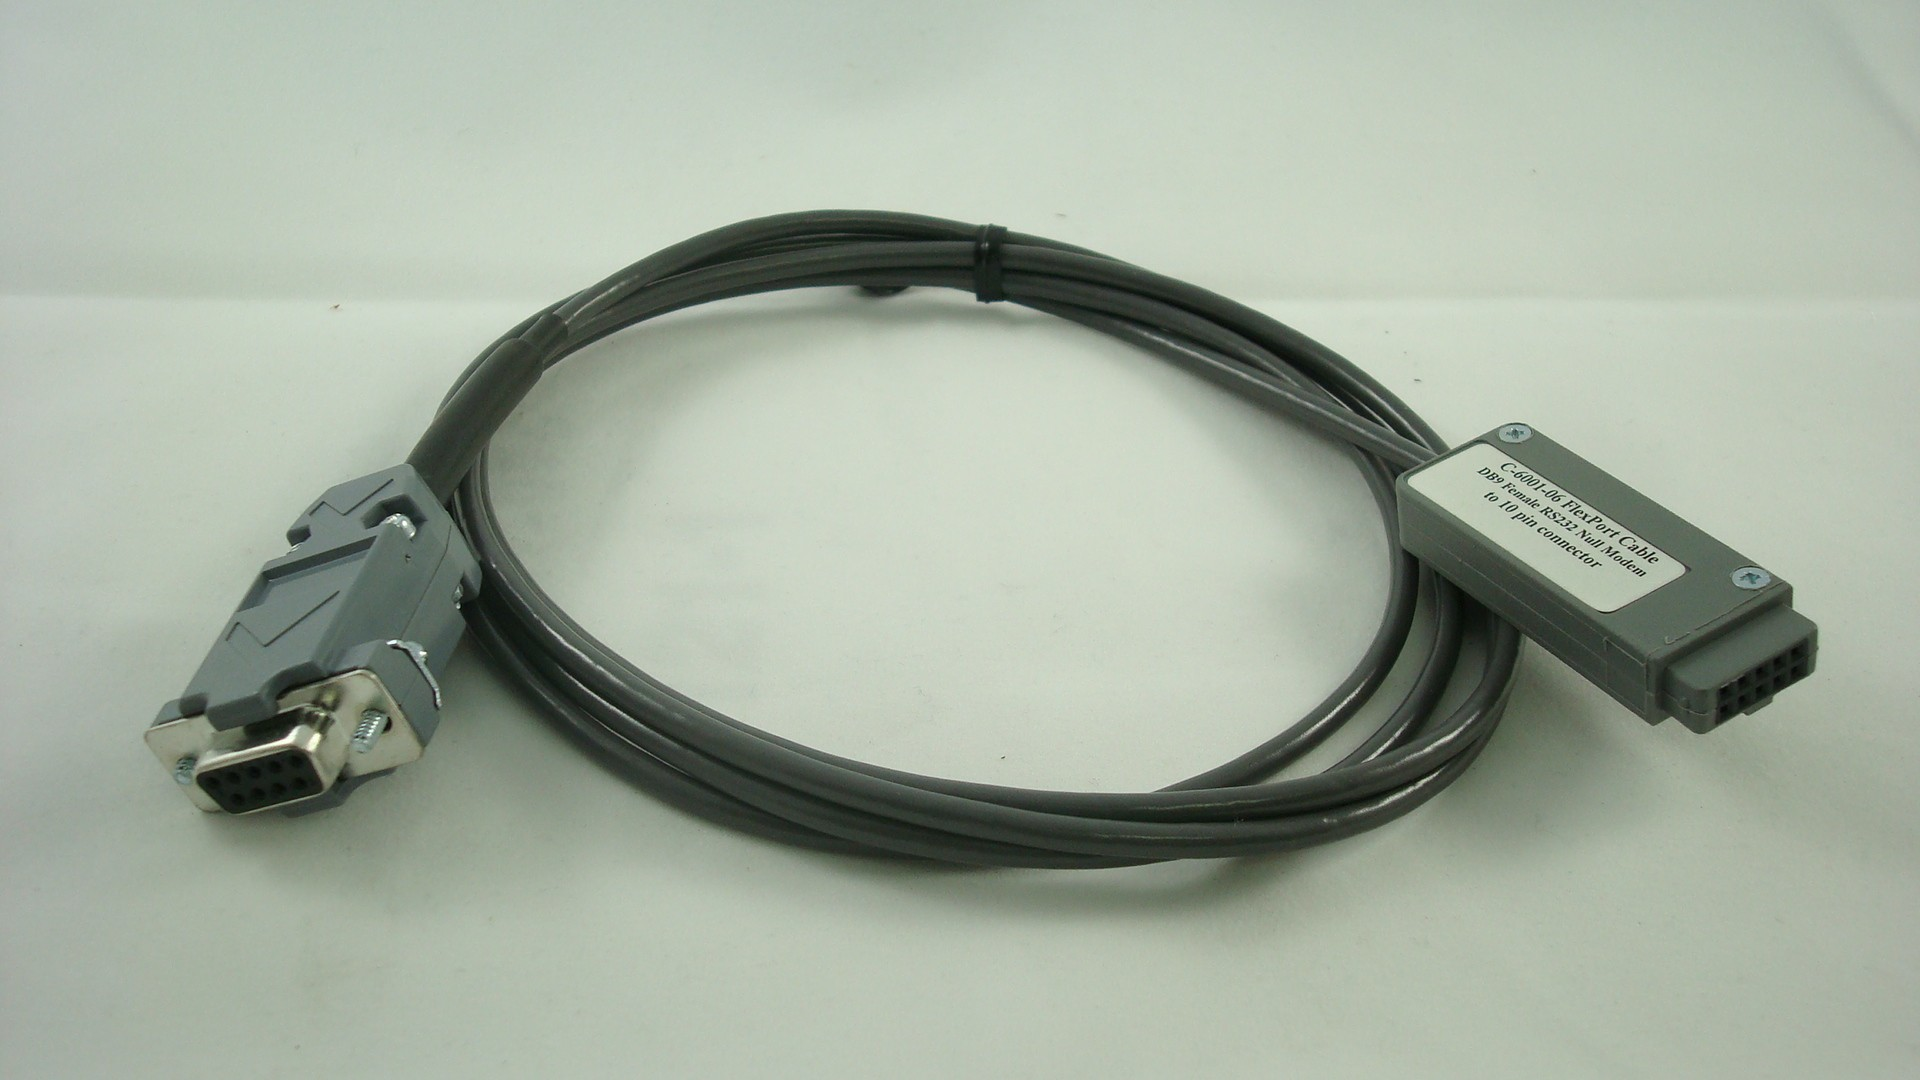 C-6051-06 RS232 DB9 Female Null Modem without Handshaking to 10 pin connector (6 ft)